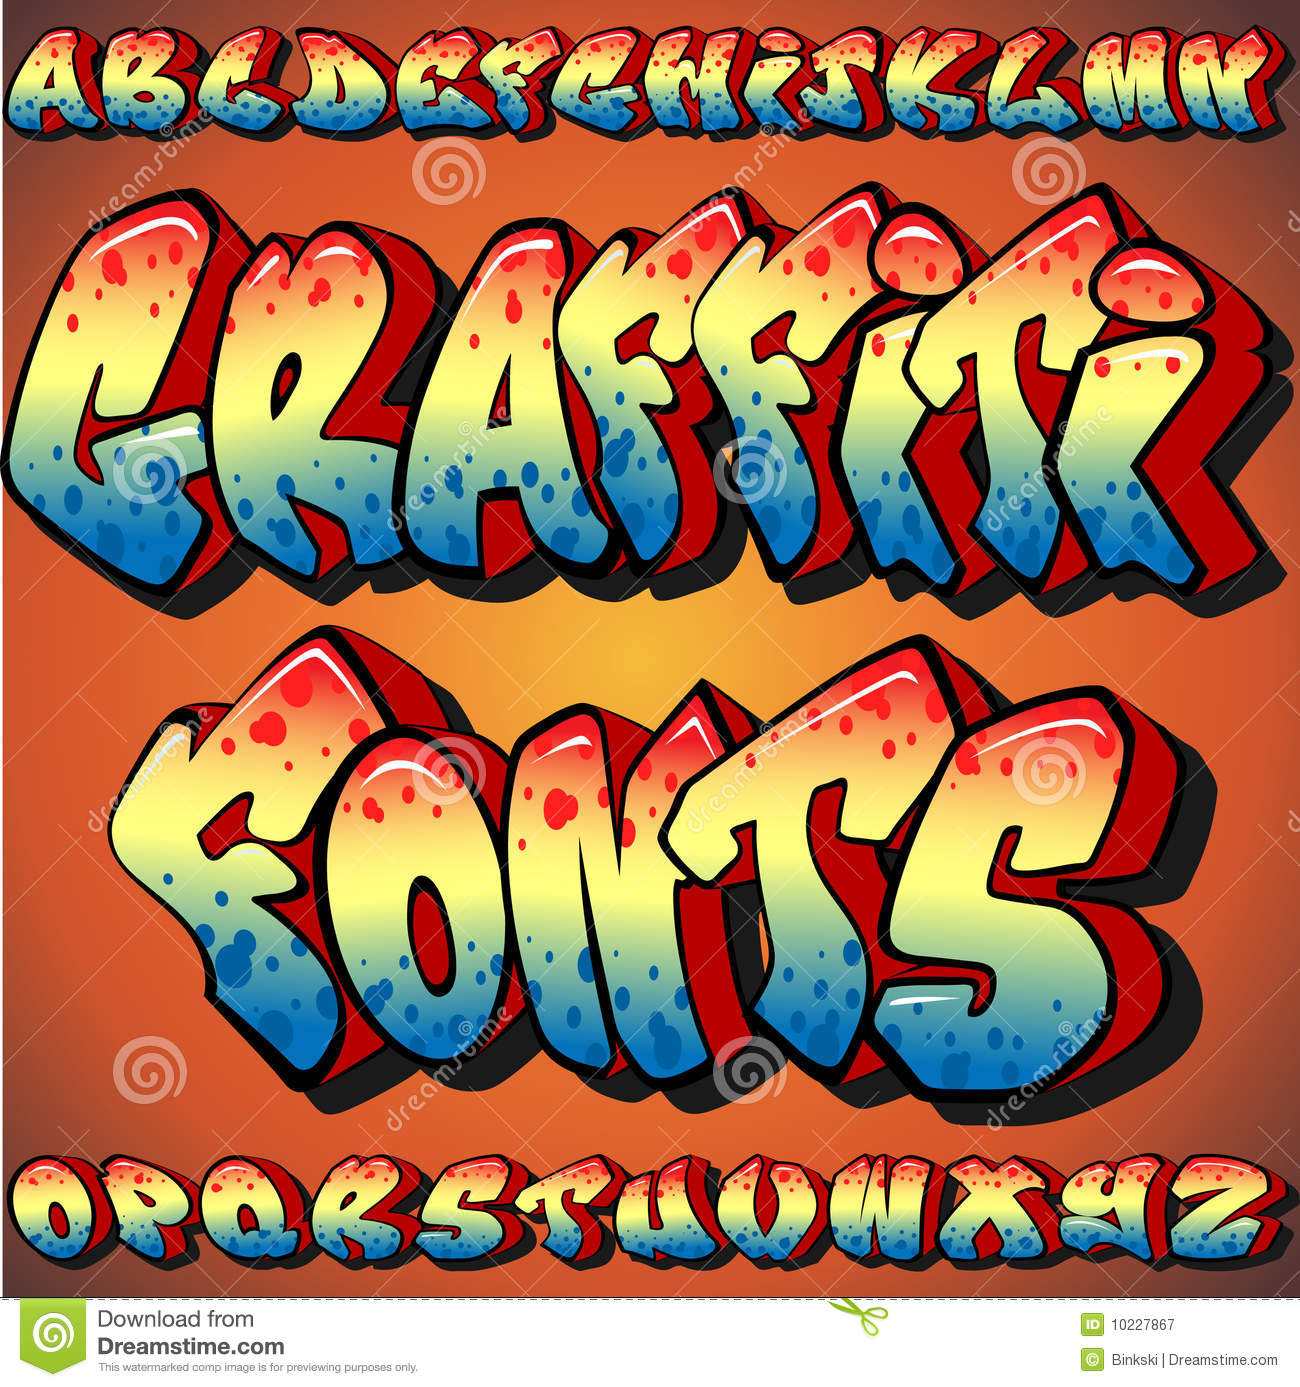 Graffiti fonts royalty free illustration